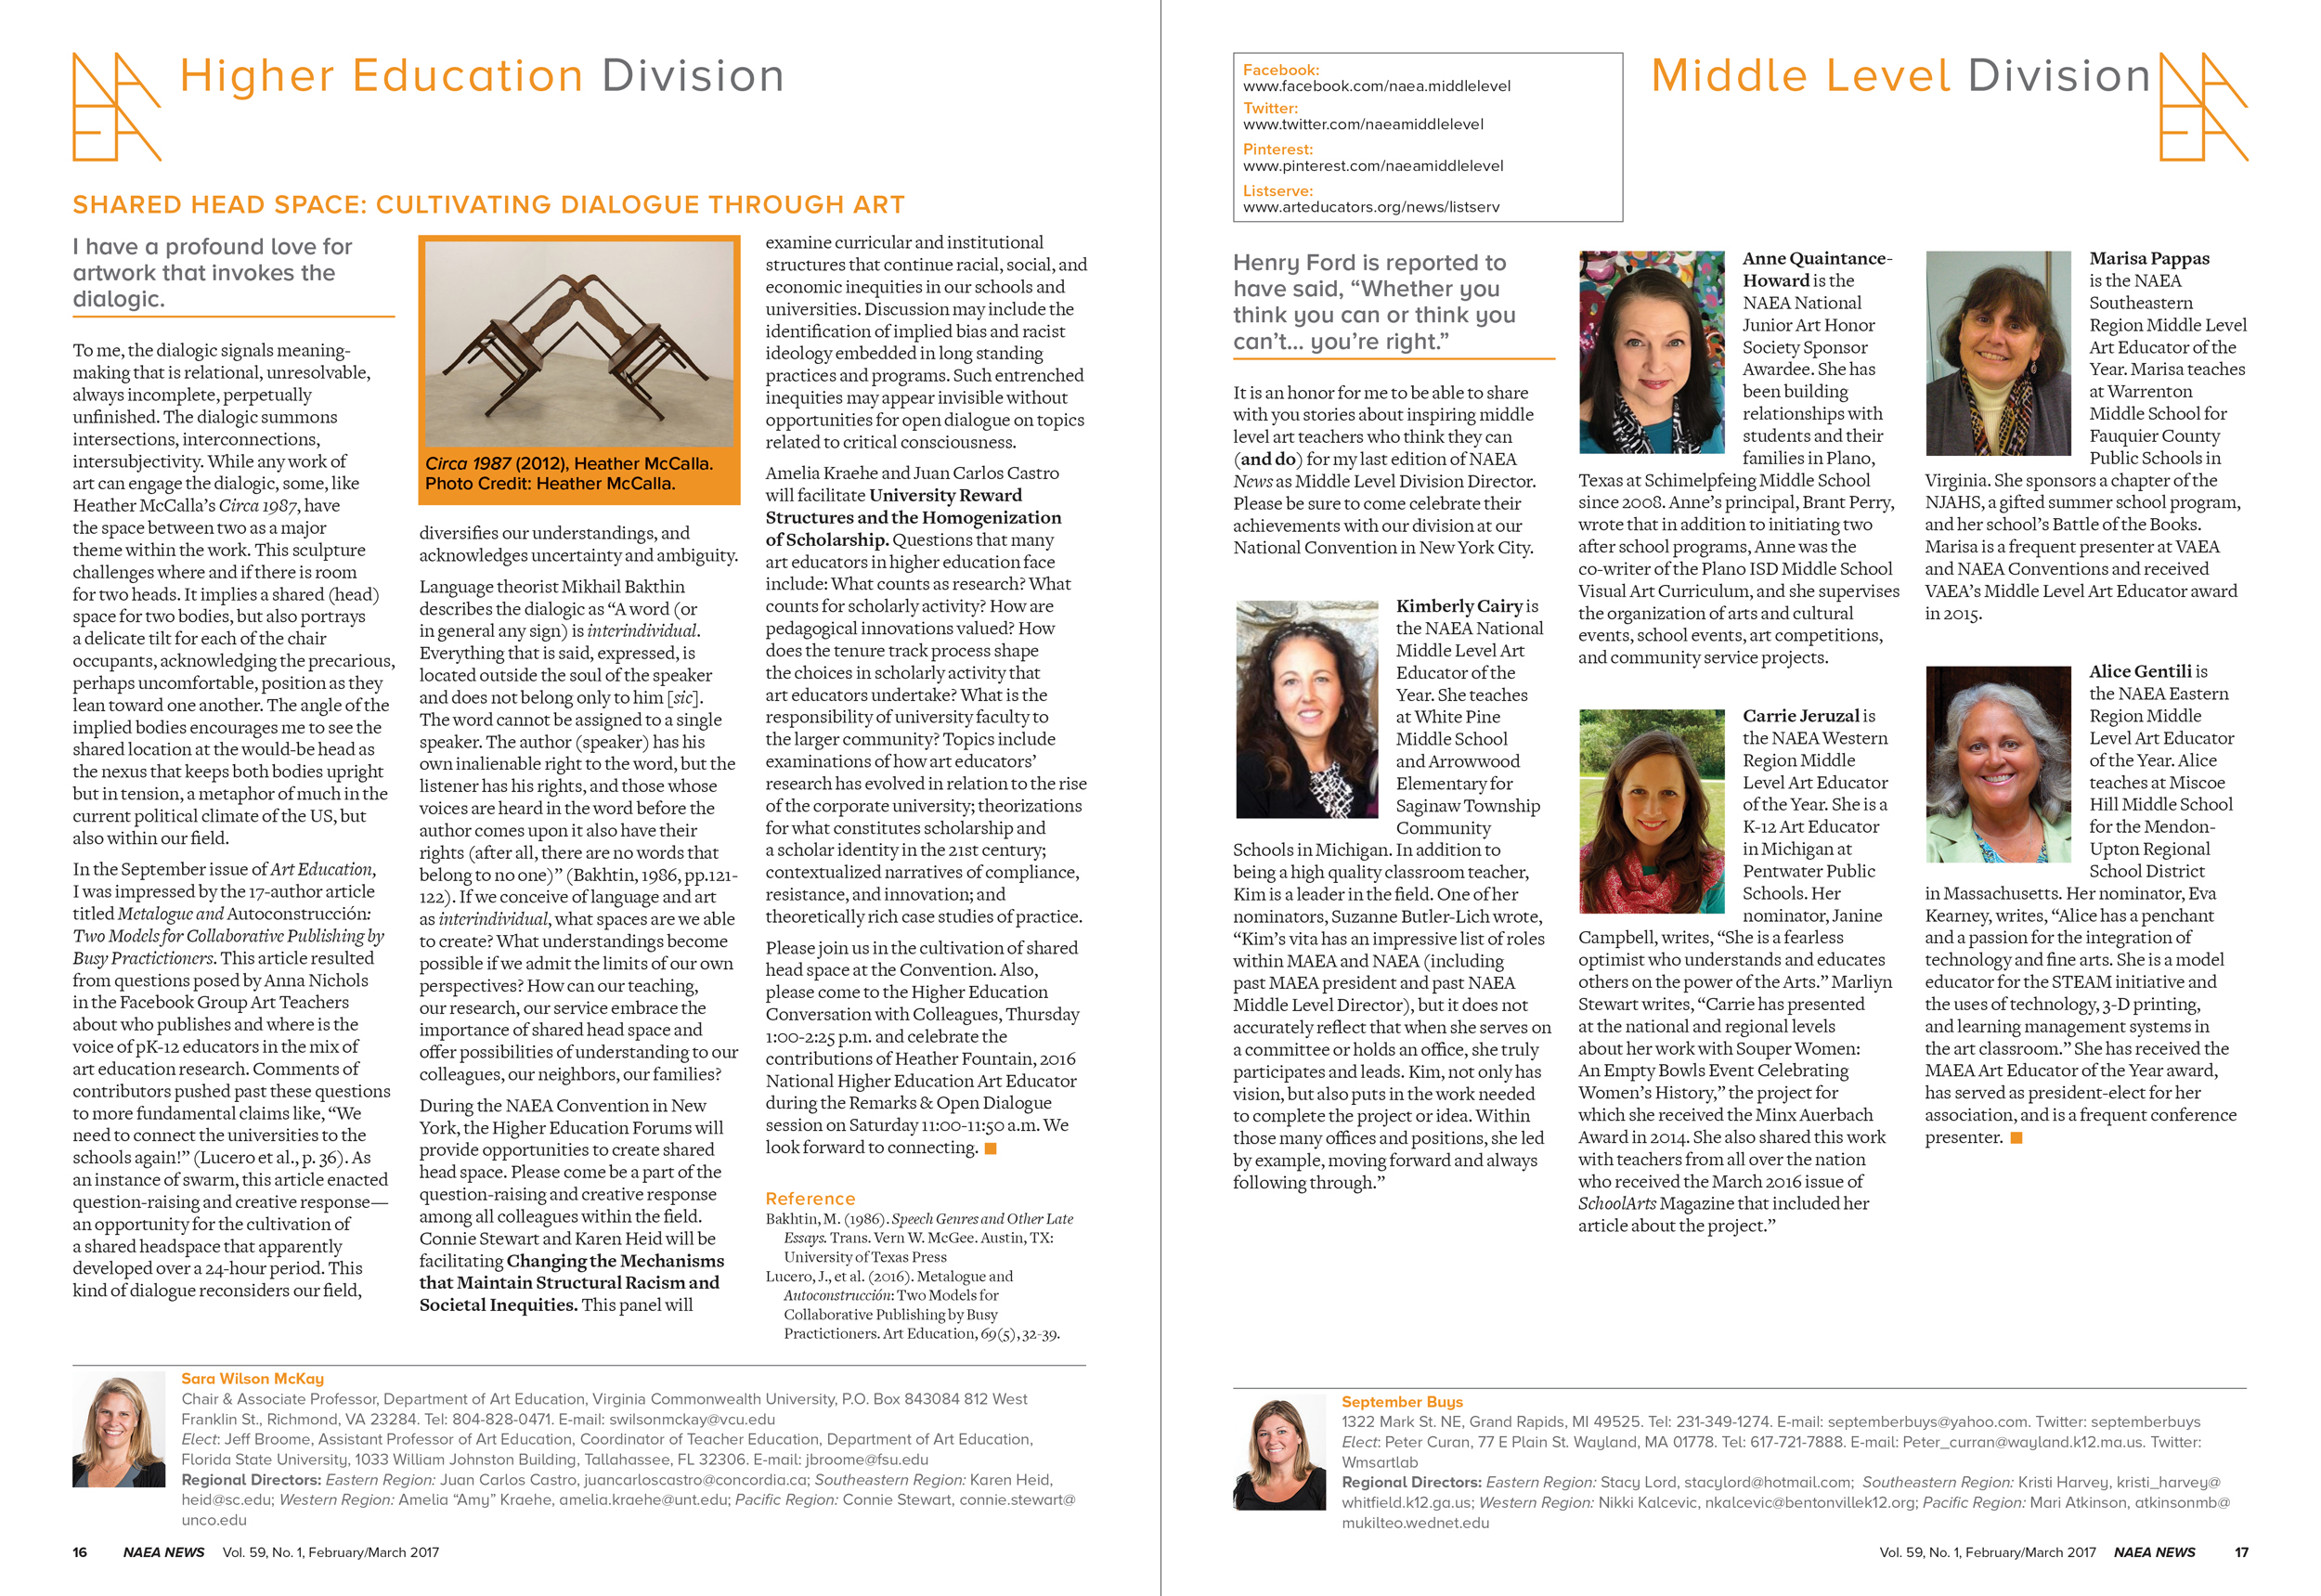 NAEA News, interior pages (National Art Education Association)